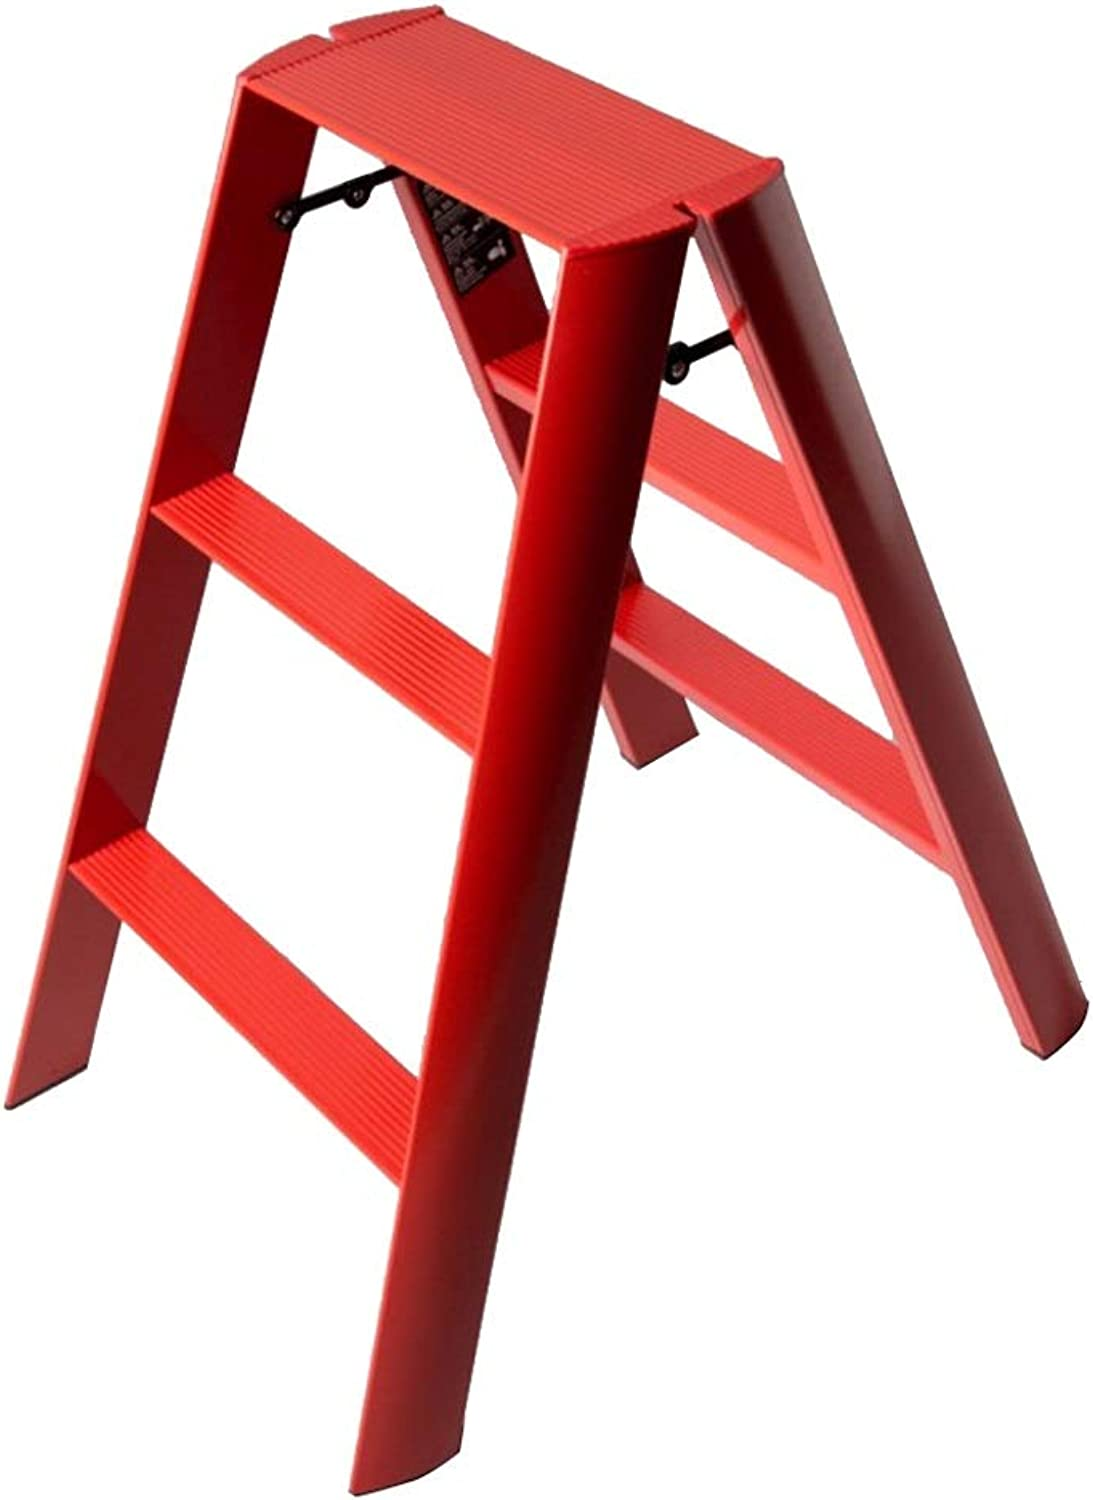 NEVY- Fold Ladder Stools Household Indoor 3-step Ladder Multifunction Step Stool Portable Aluminum Alloy Thicken Ladder (color   RED)